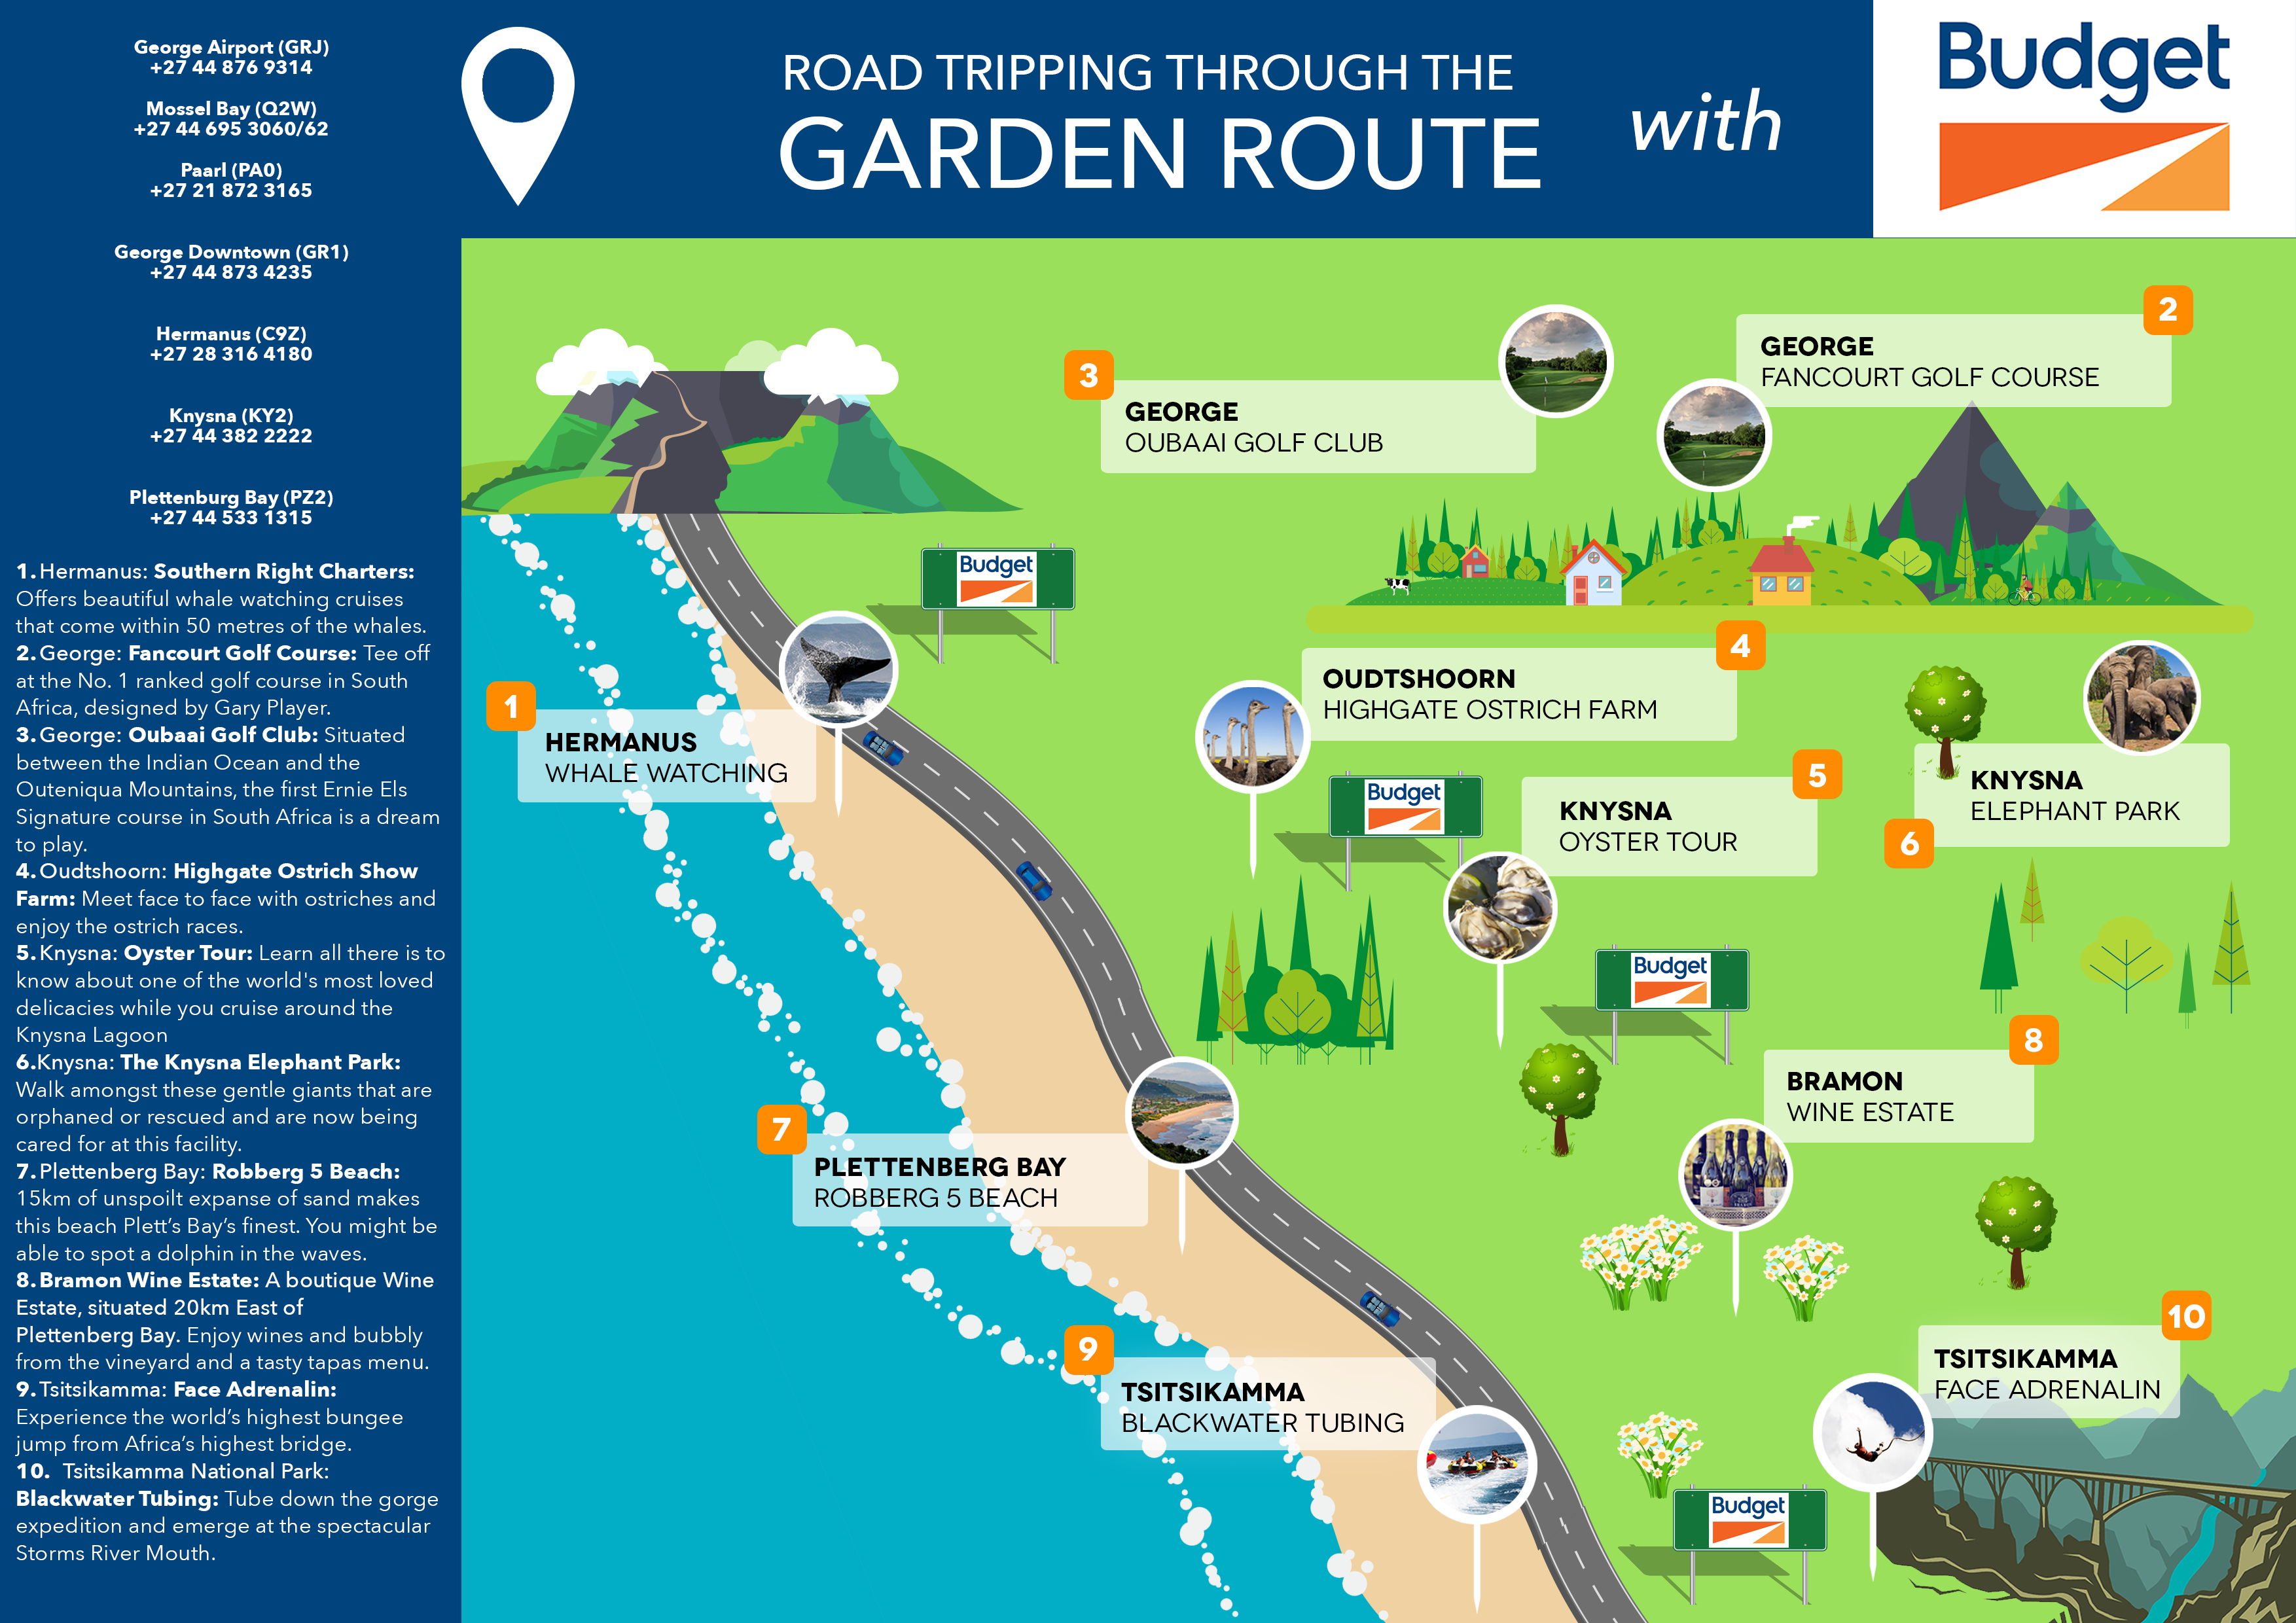 click to enlarge - Garden Route